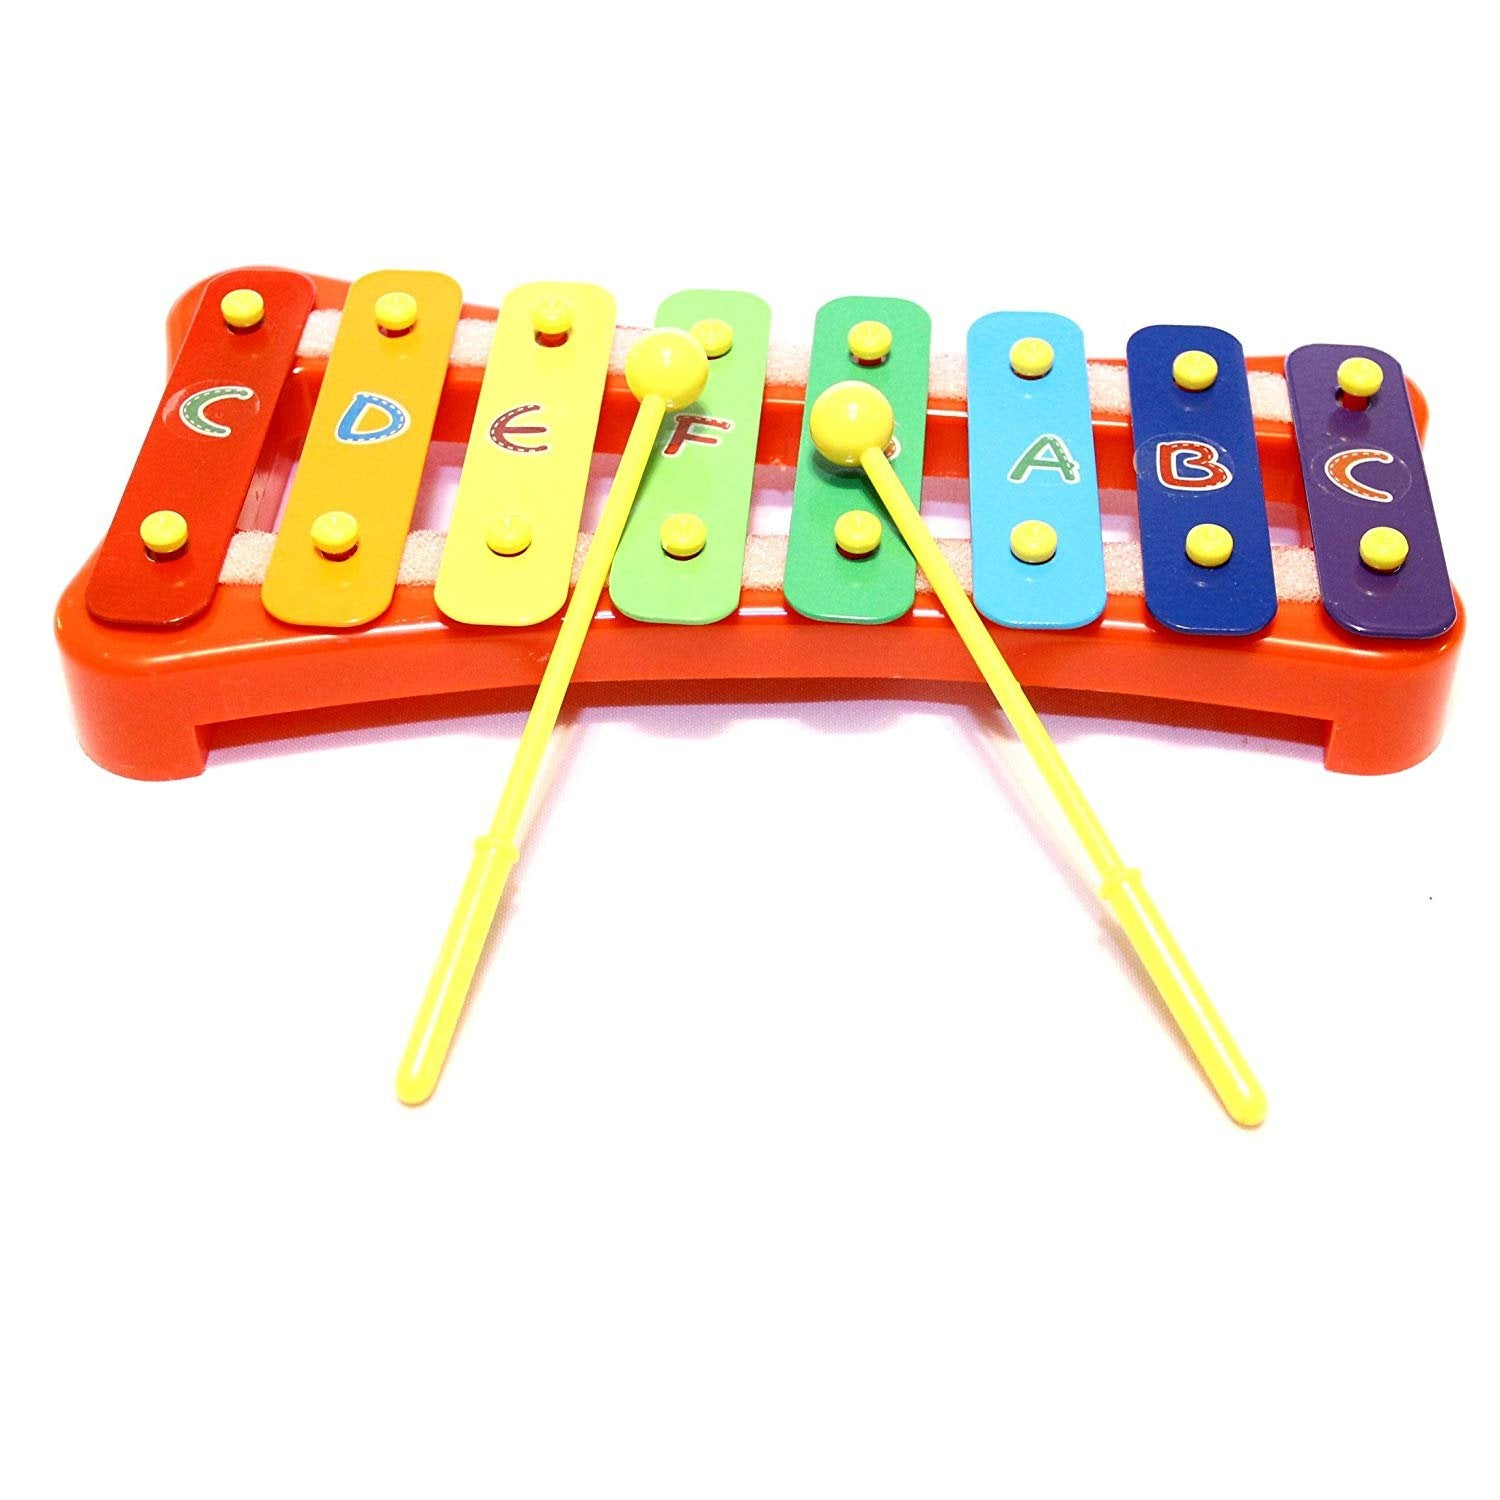 Xylophone | Dazzling Toys Letters Basic Colored Xylophone with 2 Sticks | Musical Toy for Kids